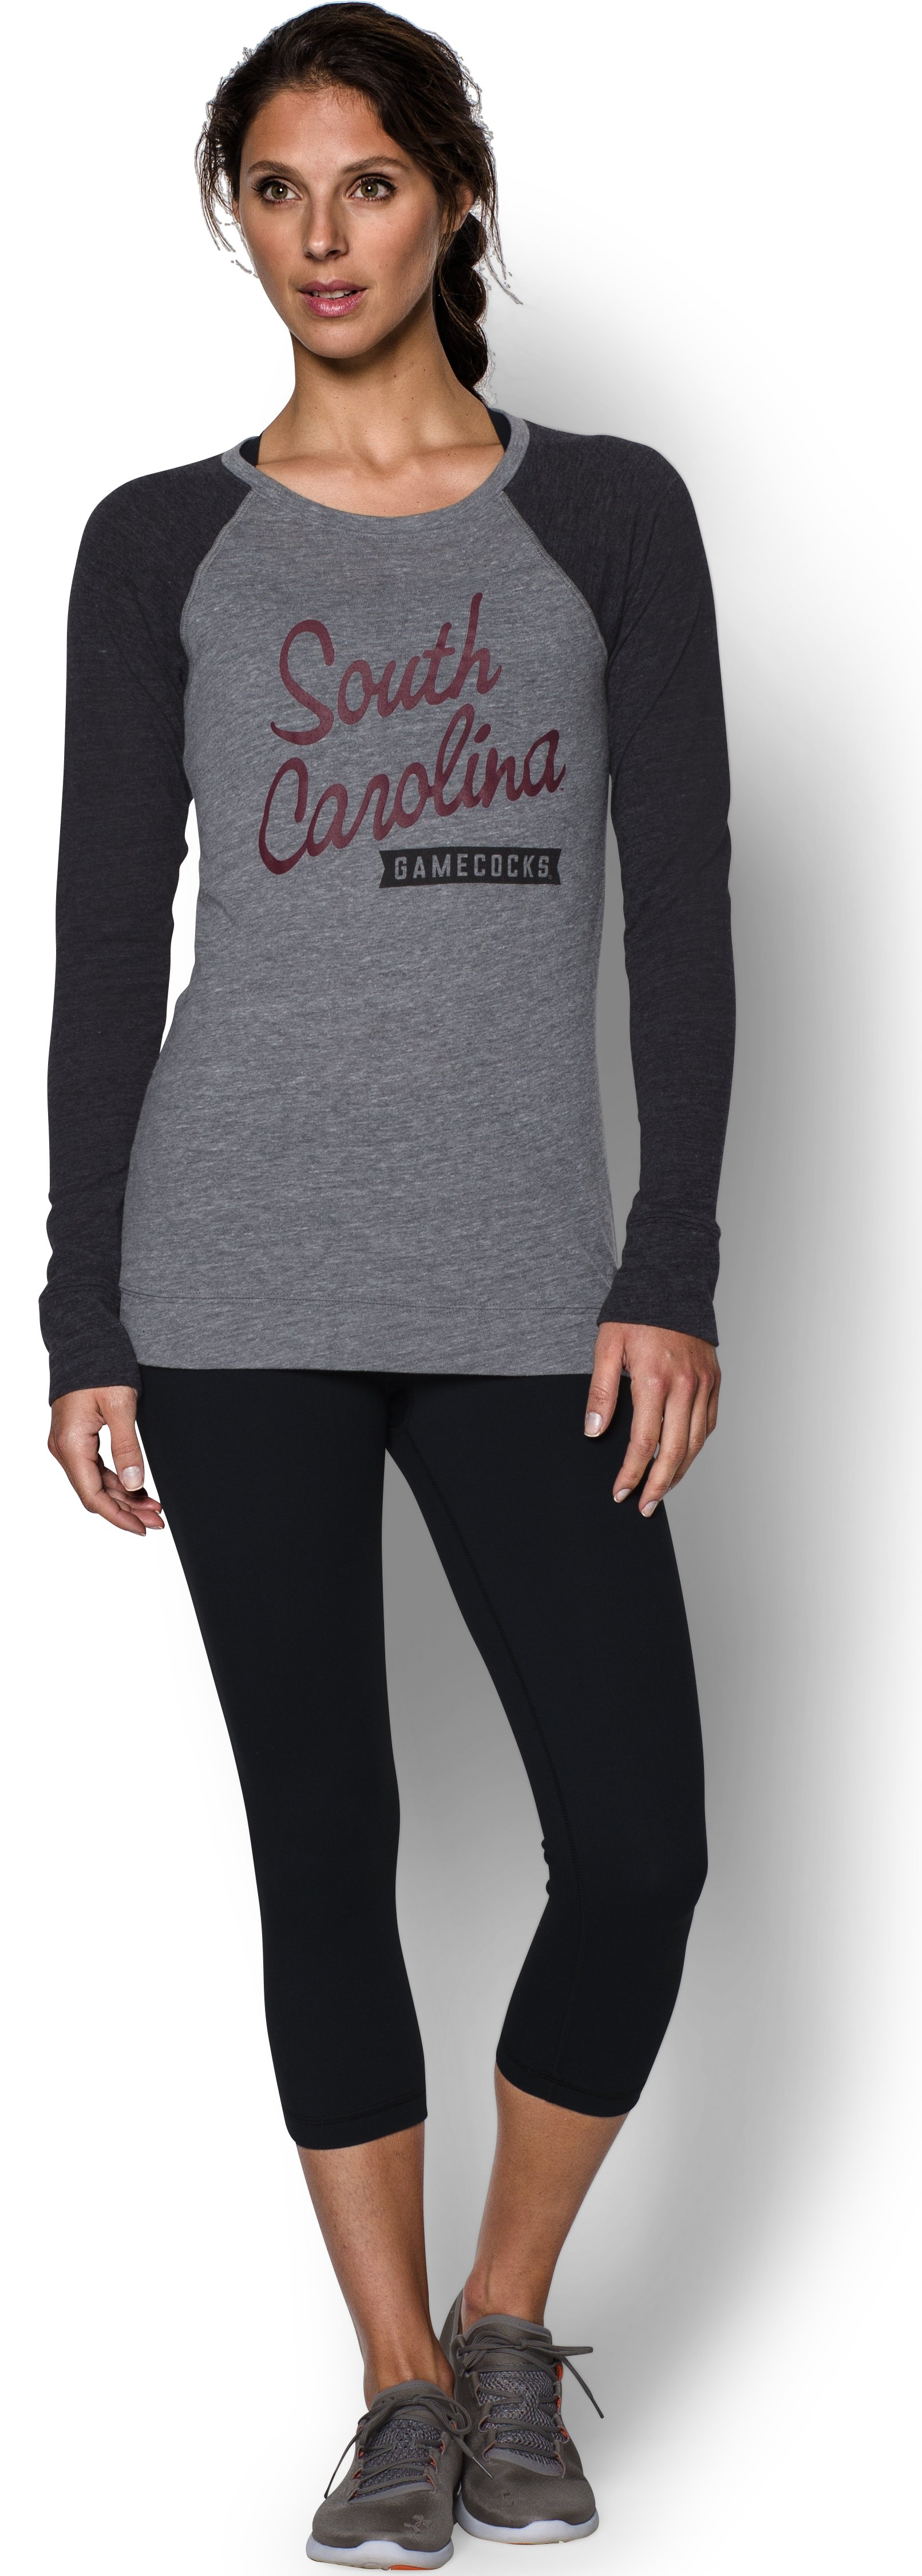 Women's South Carolina UA Tri-Blend Long Sleeve Crew, True Gray Heather